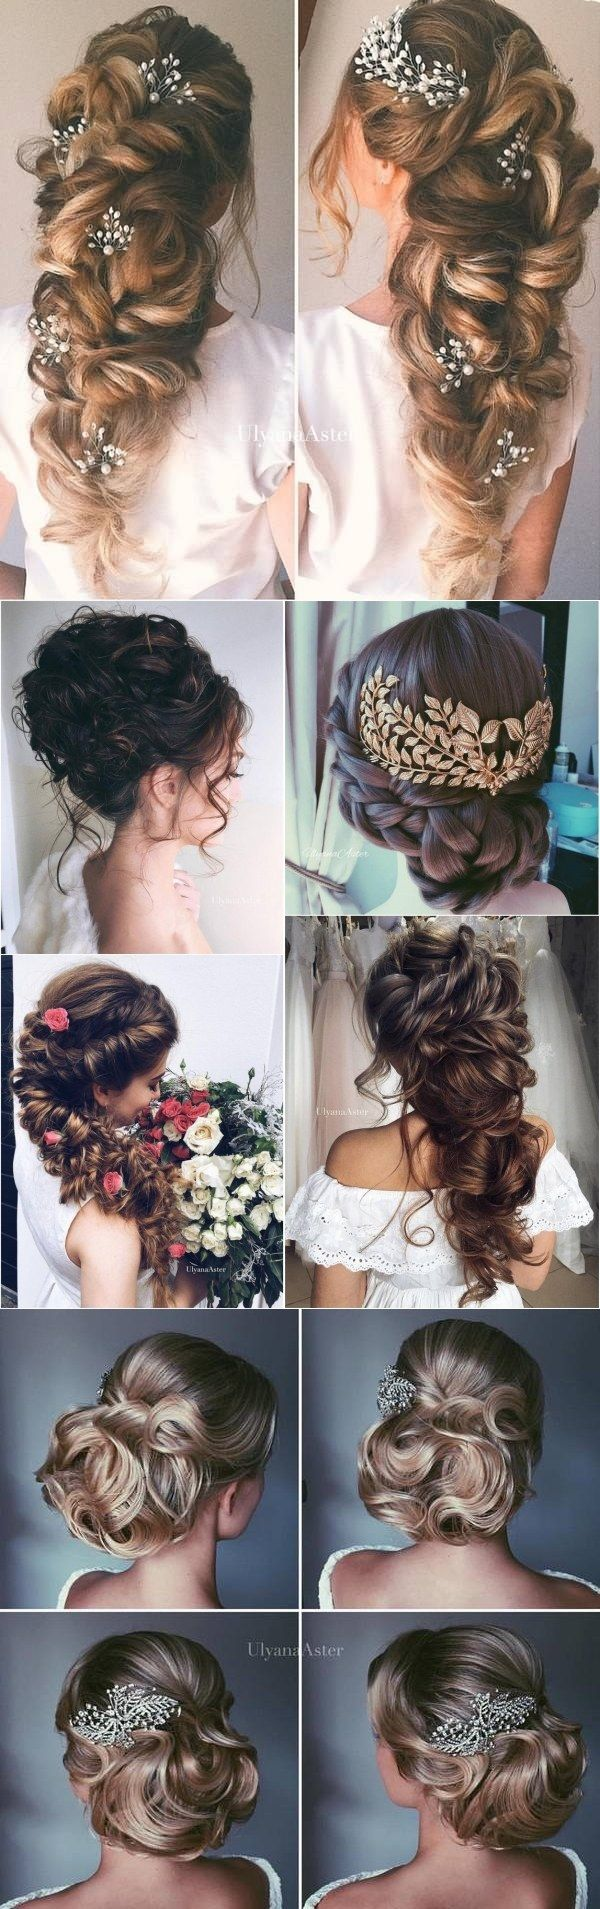 Cool 1000 Ideas About Quinceanera Hairstyles On Pinterest Quince Short Hairstyles Gunalazisus